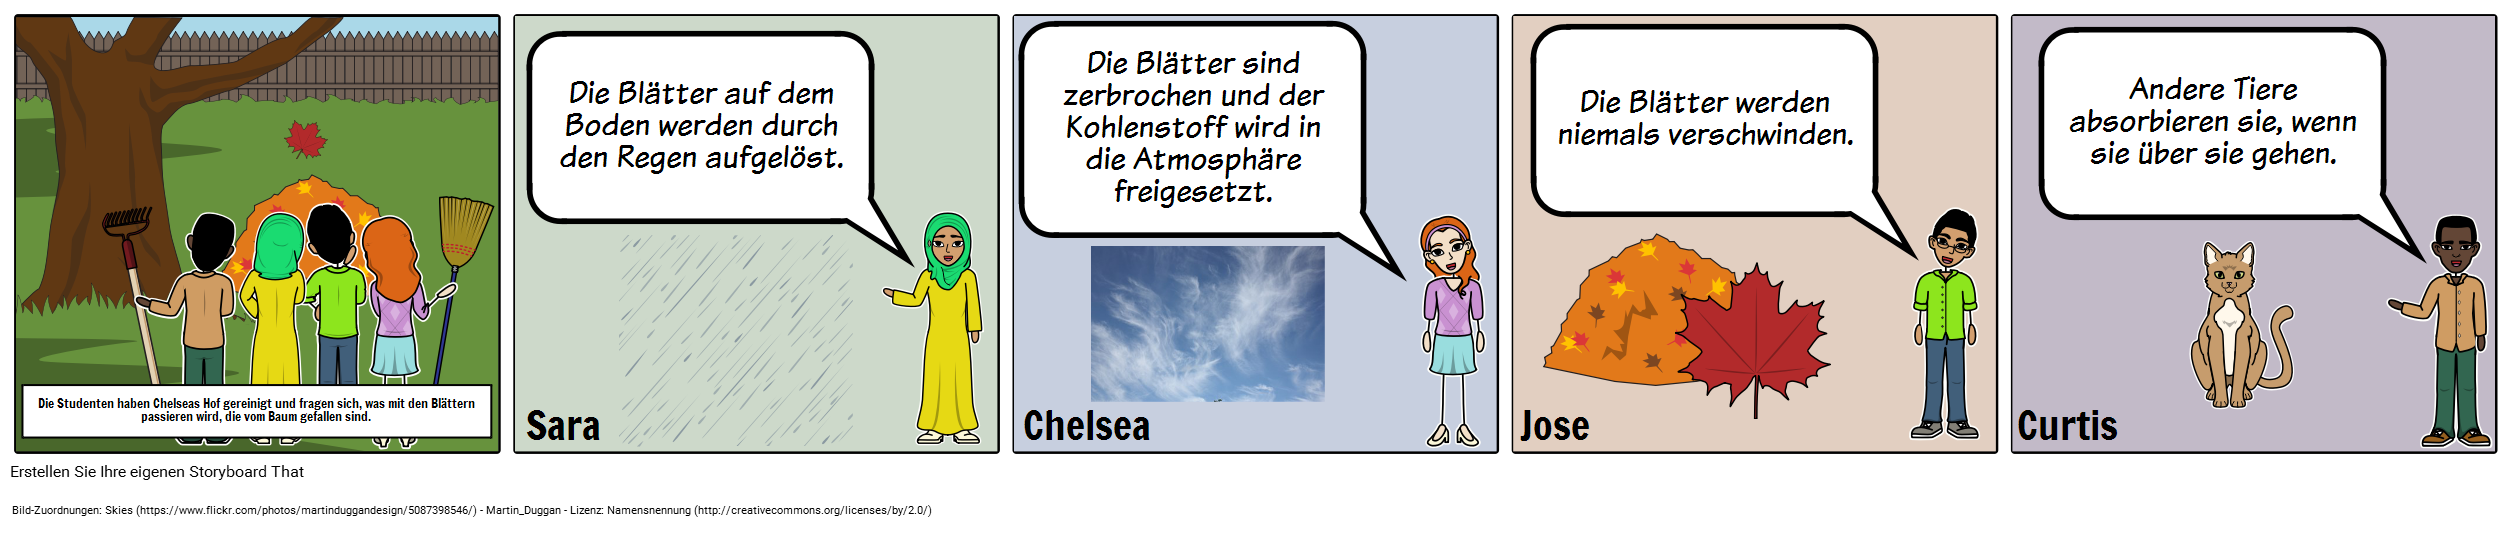 Diskussion Storyboard - MS - Der Carbon Cycle